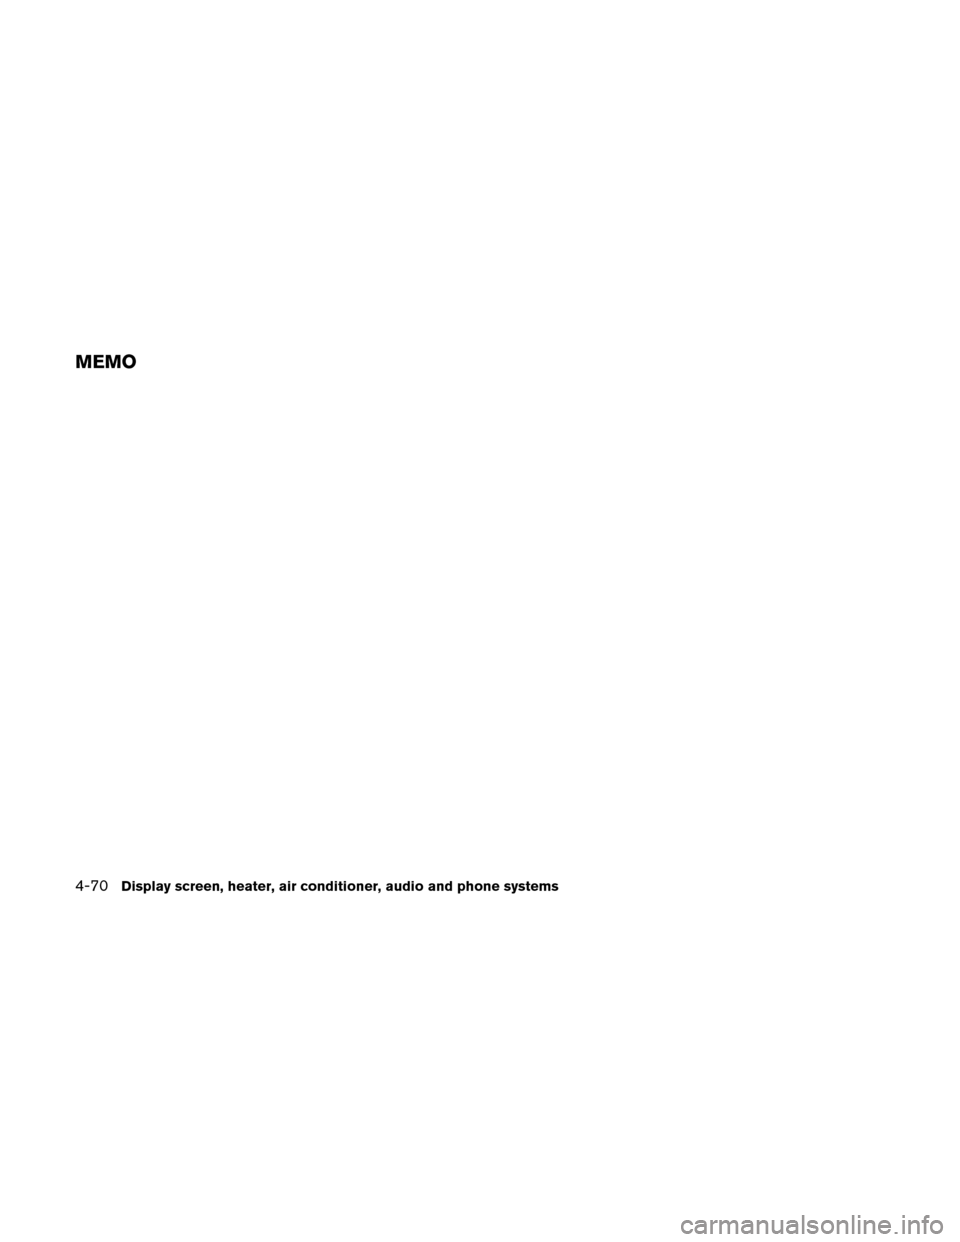 NISSAN VERSA HATCHBACK 2011 1.G Owners Manual, Page 217